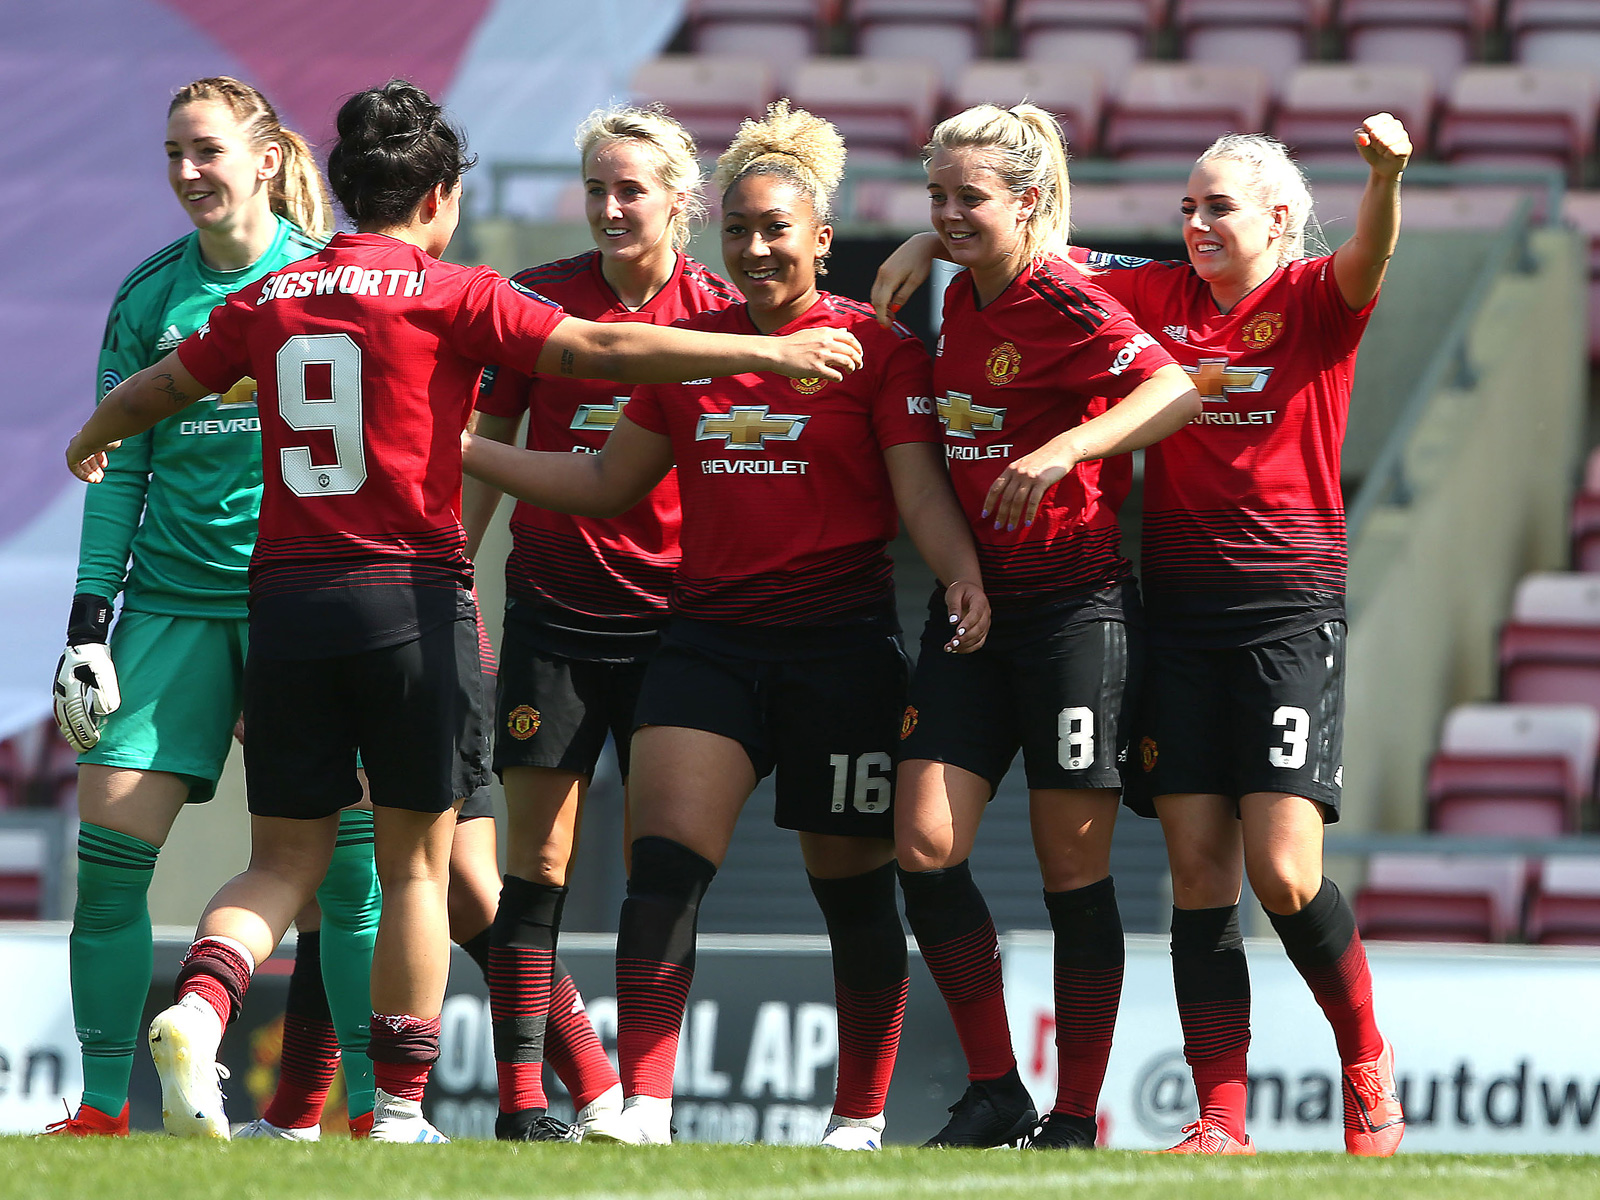 Man United women have enjoyed a successful start after launching their team